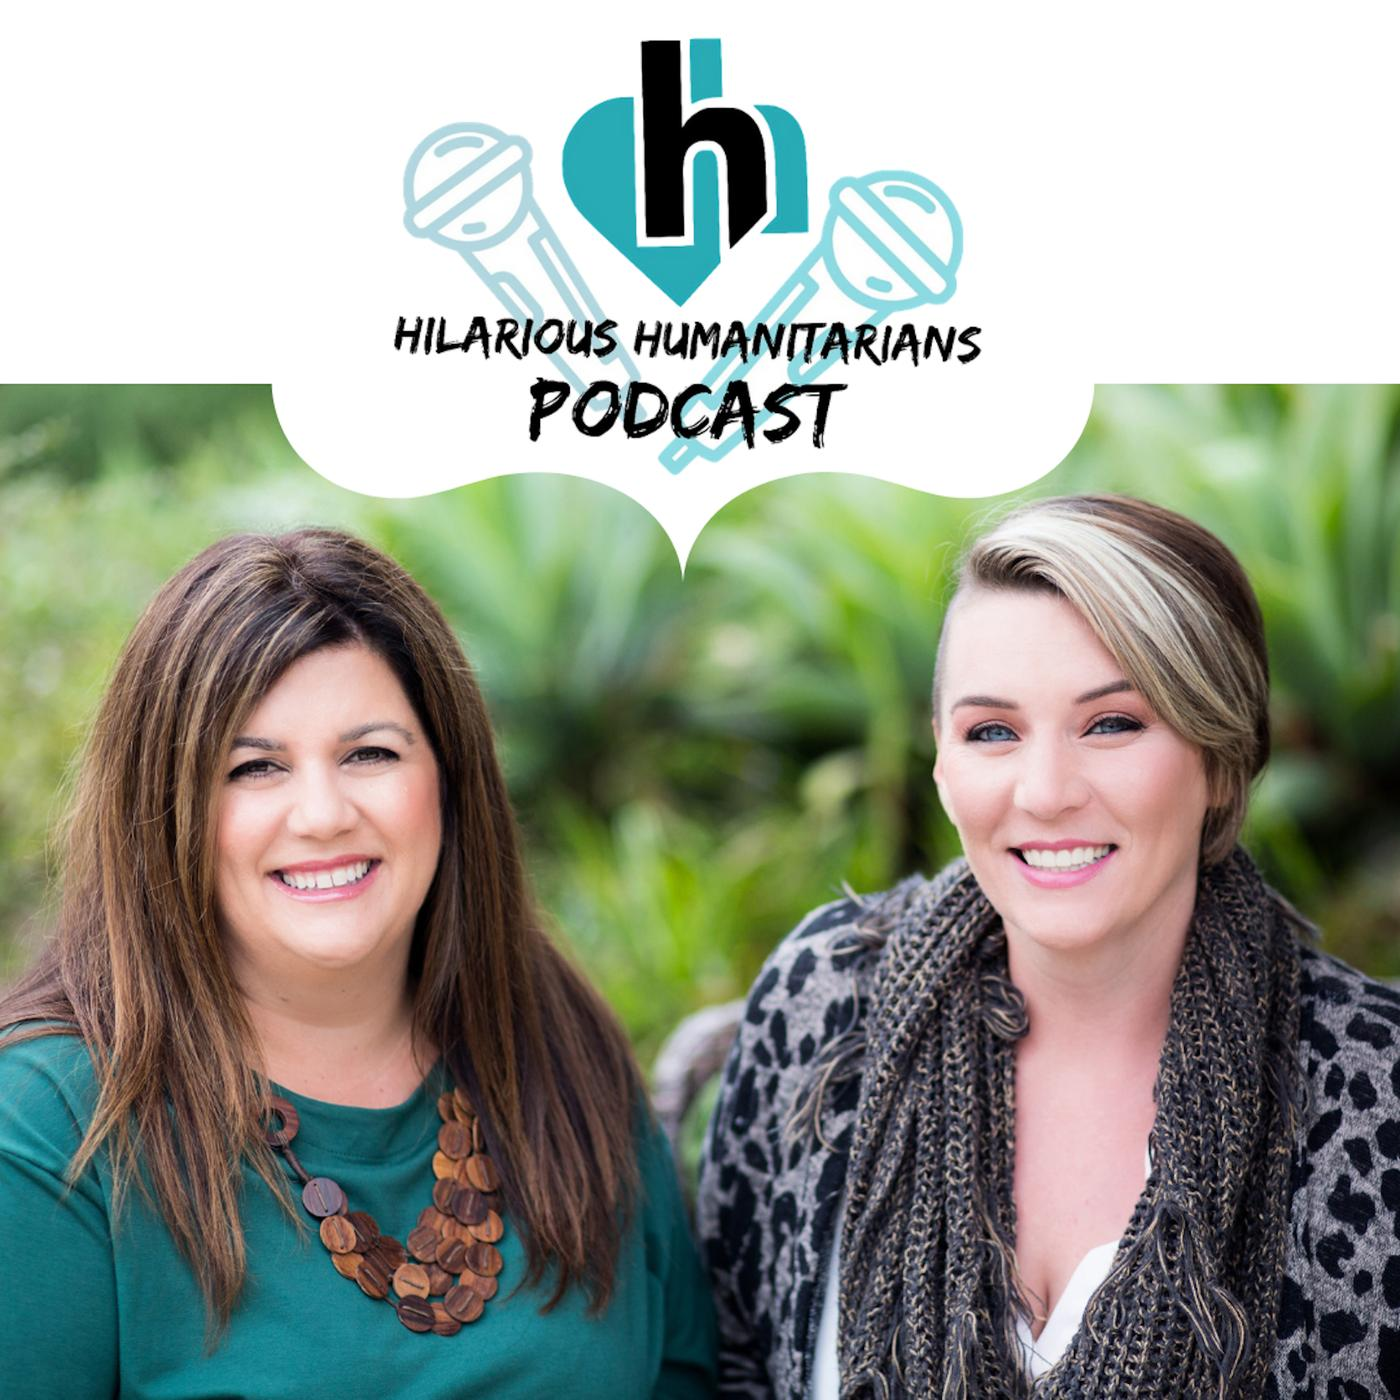 Hilarious Humanitarians Podcast - Deanna Silverman, LCSW & Erin